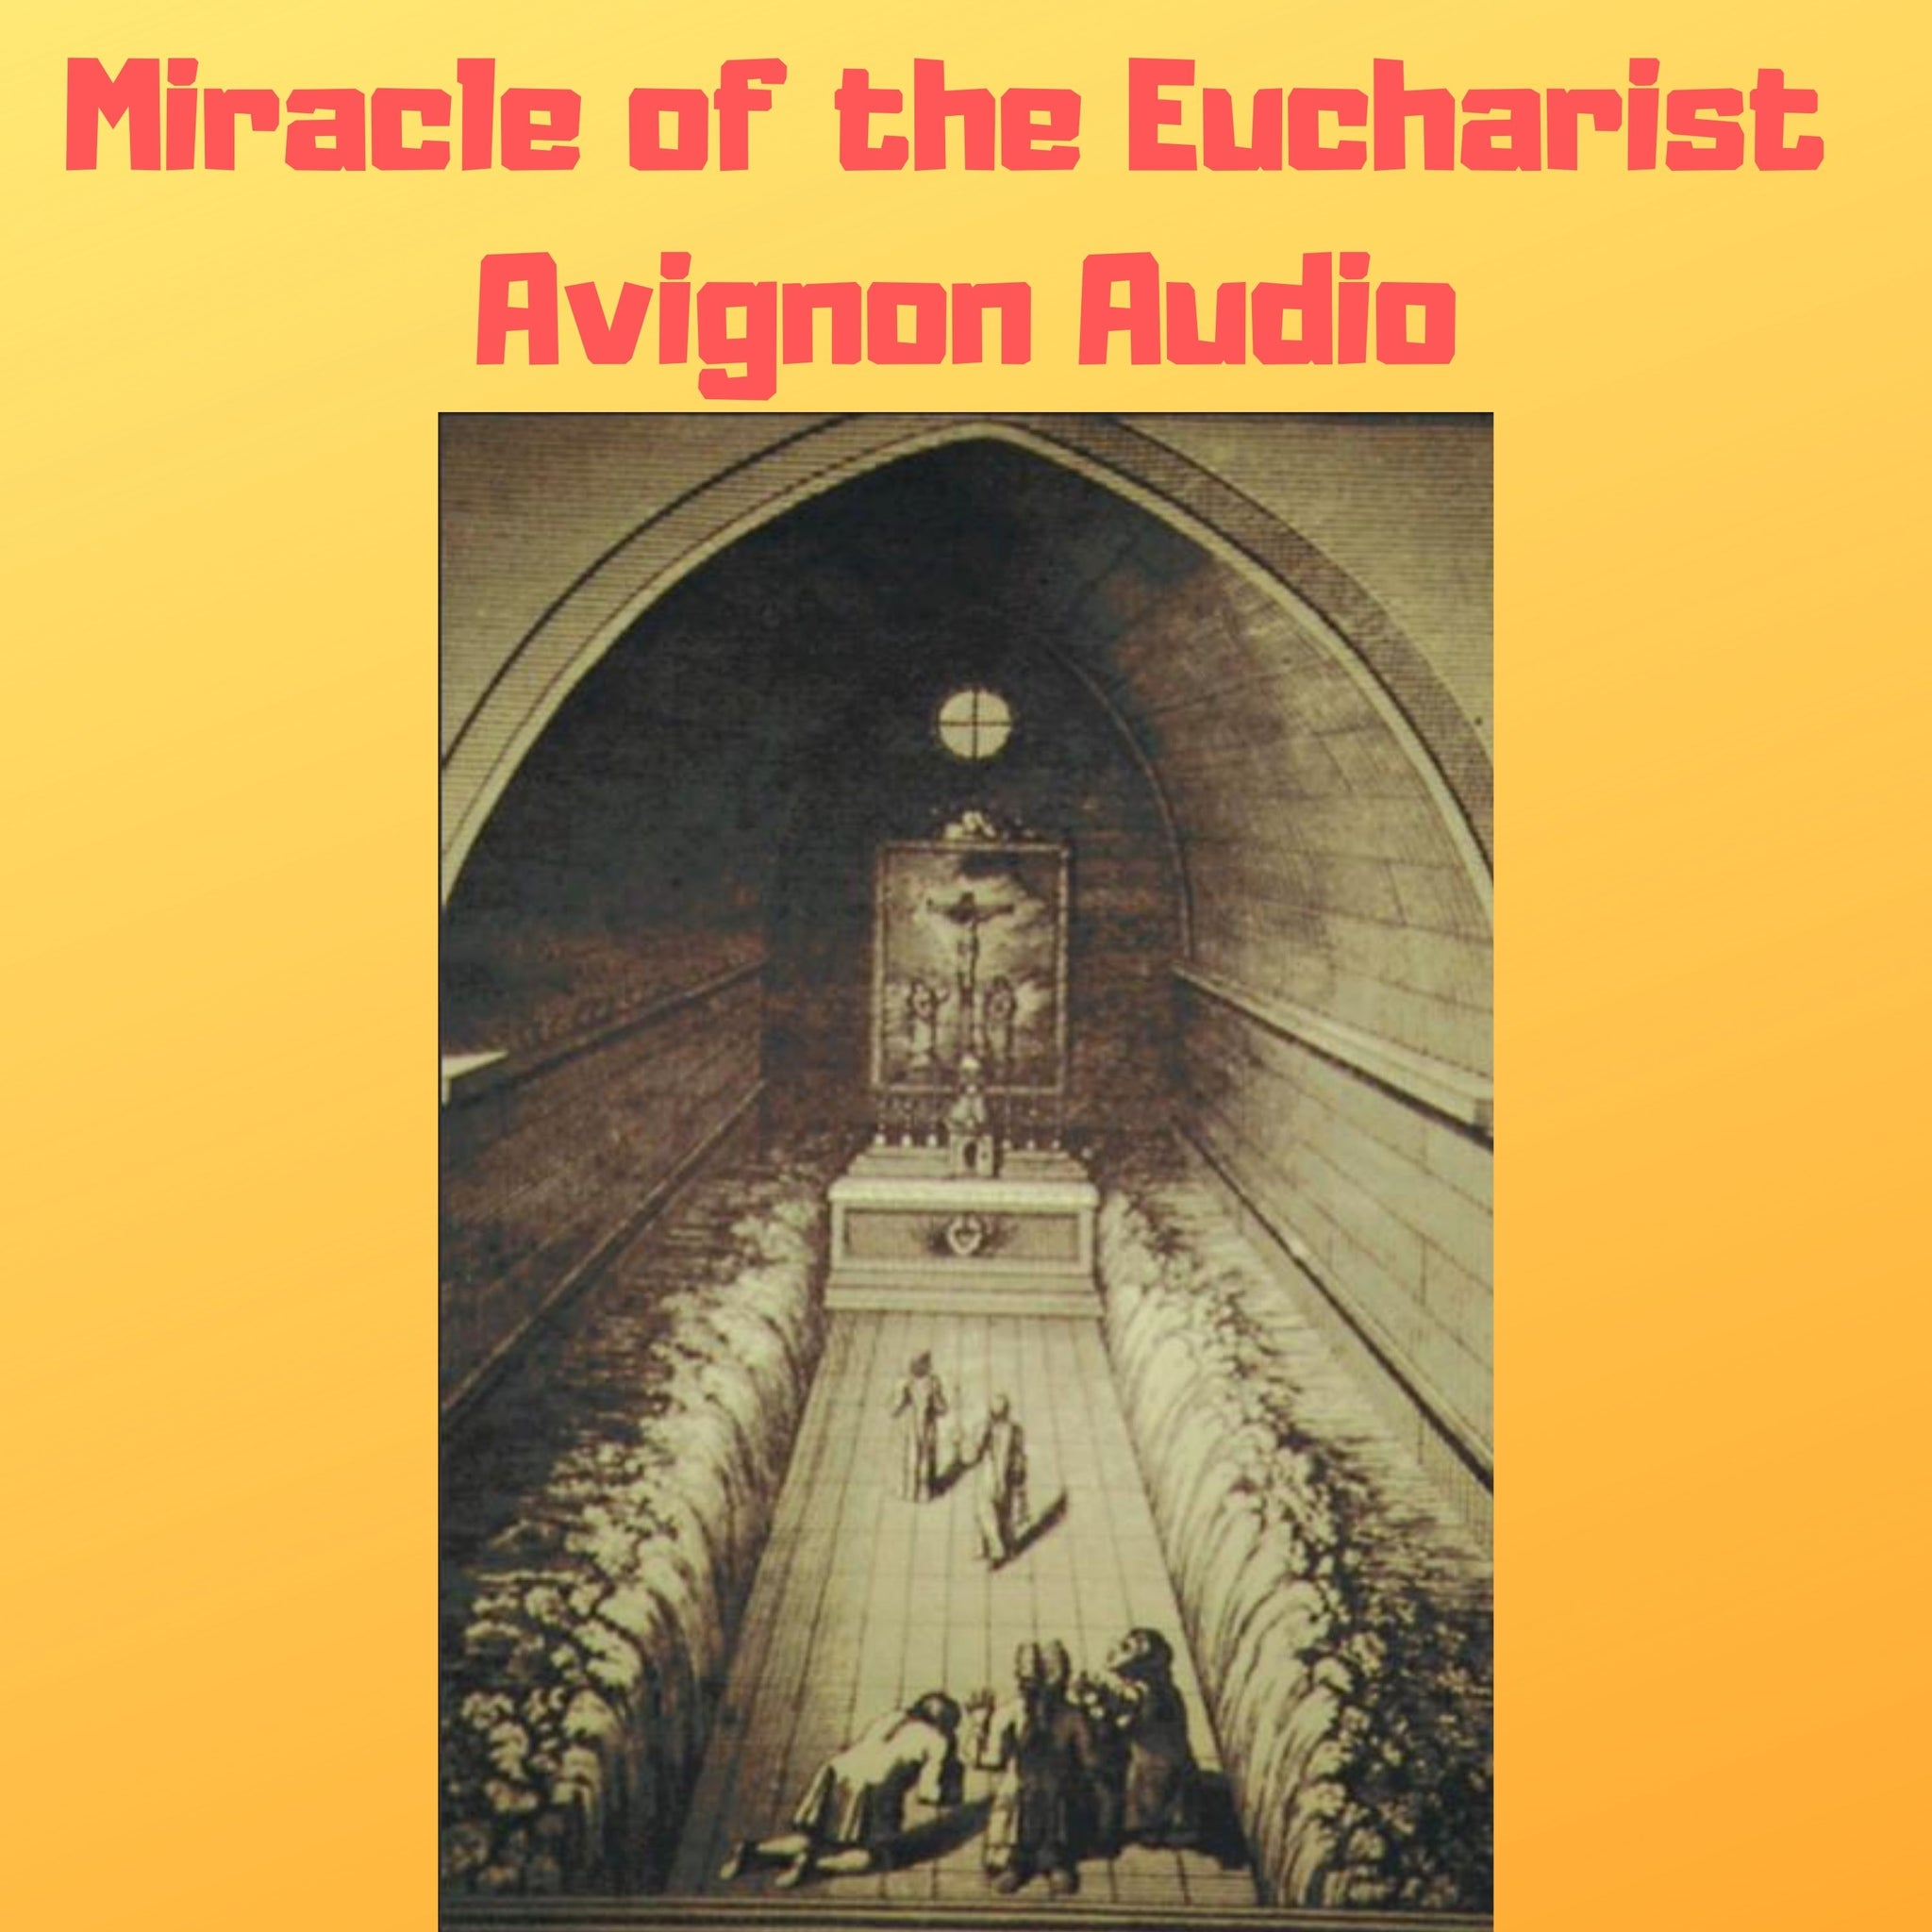 Miracle of the Eucharist of Avignon, France 1433 Audiobook - Bob and Penny Lord